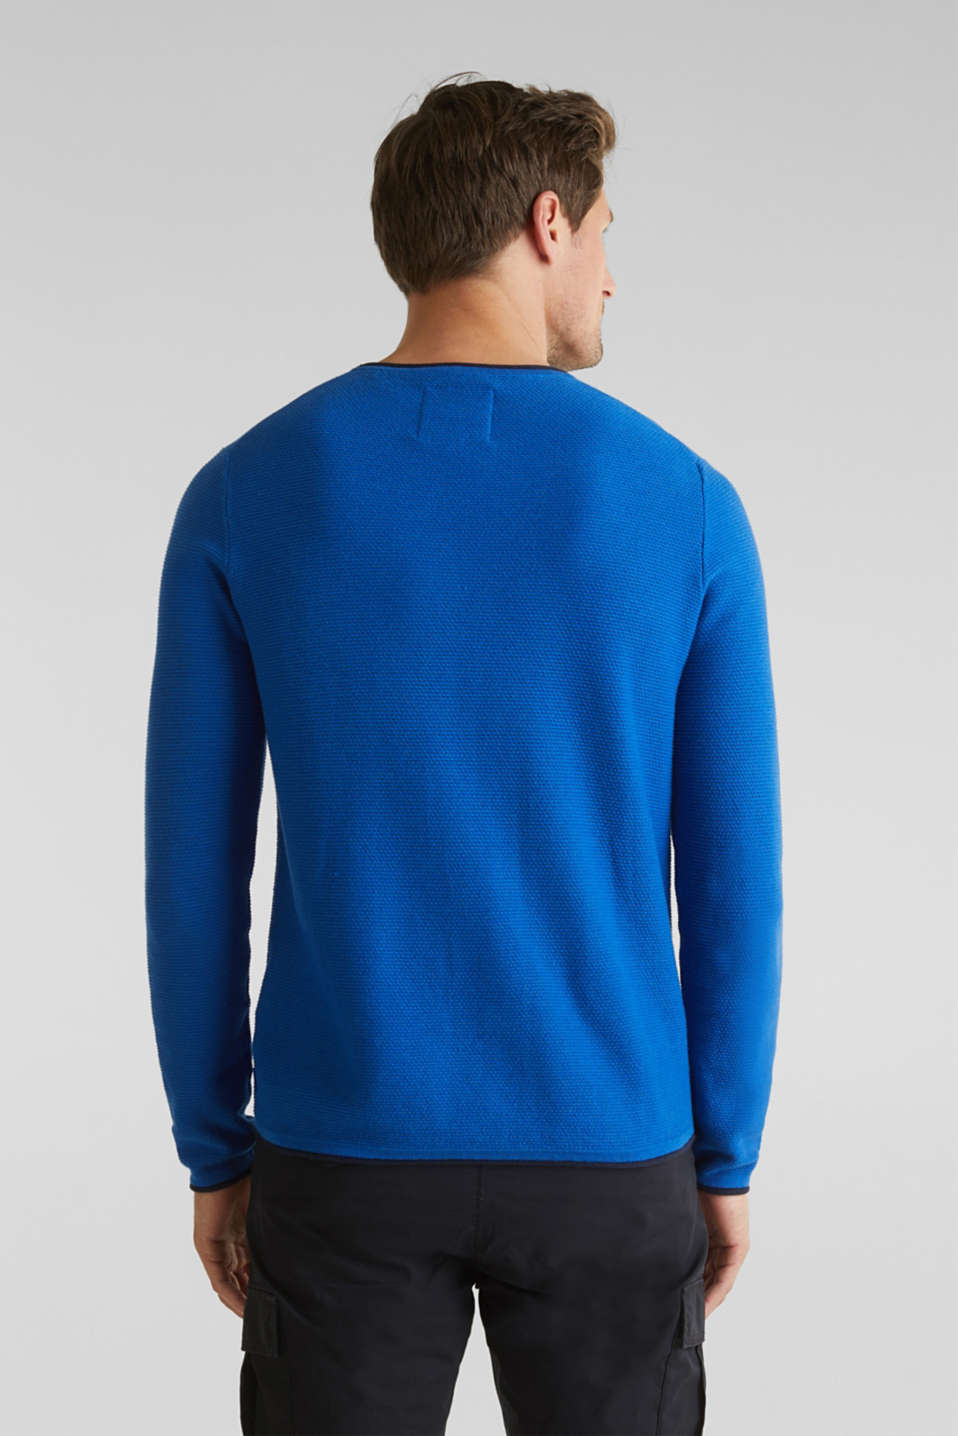 Textured jumper made of 100% cotton, BLUE 5, detail image number 3